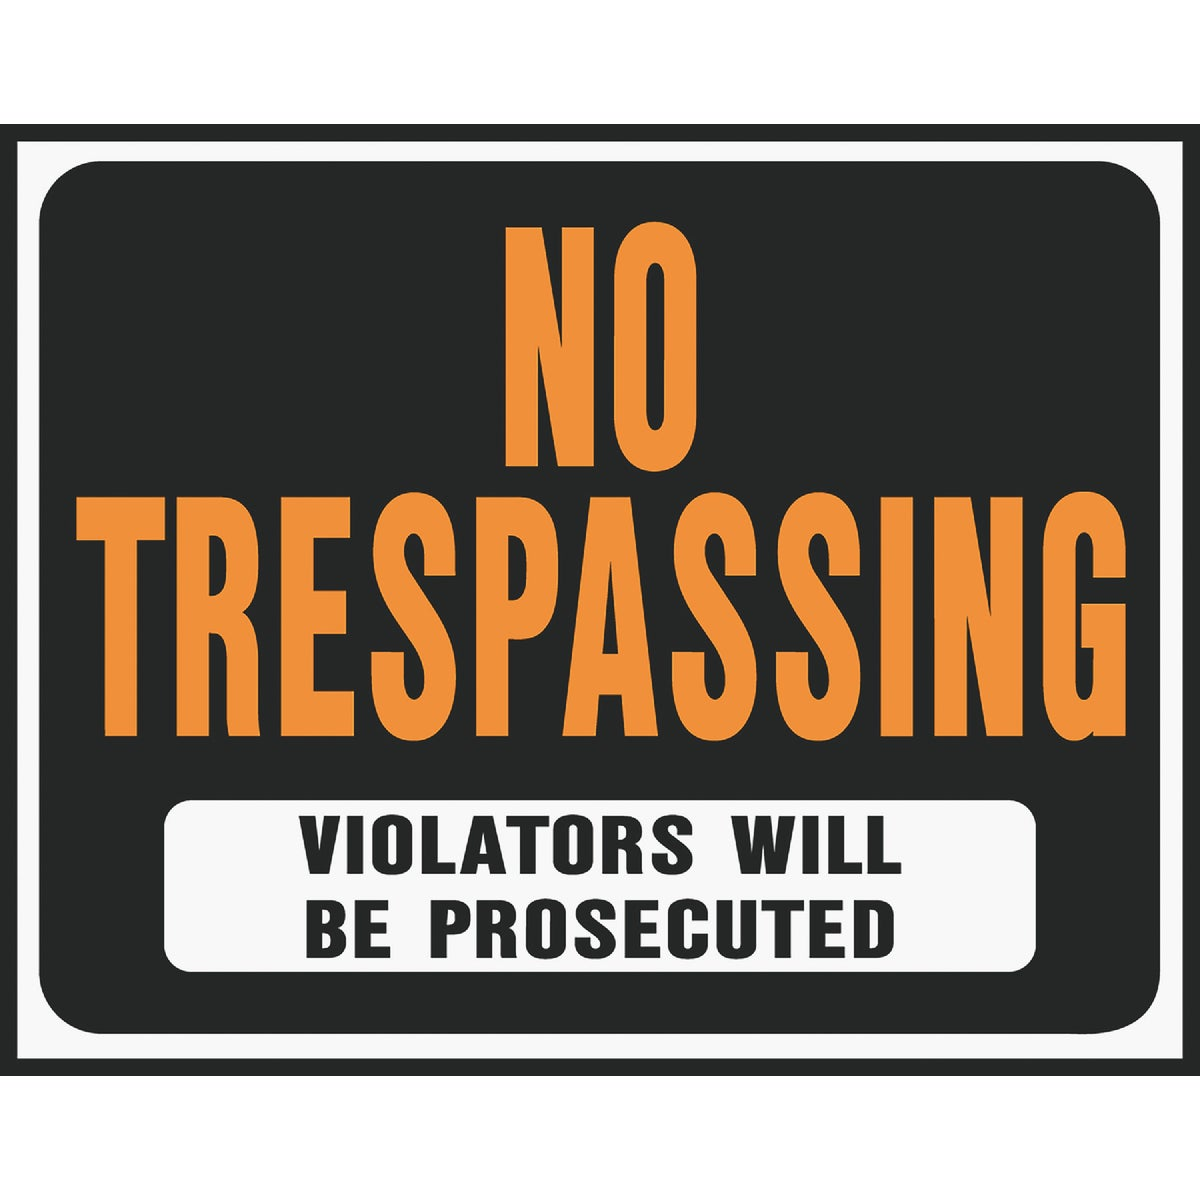 15X19 NO TRESPASS SIGN - SP-104 by Hy Ko Prods Co